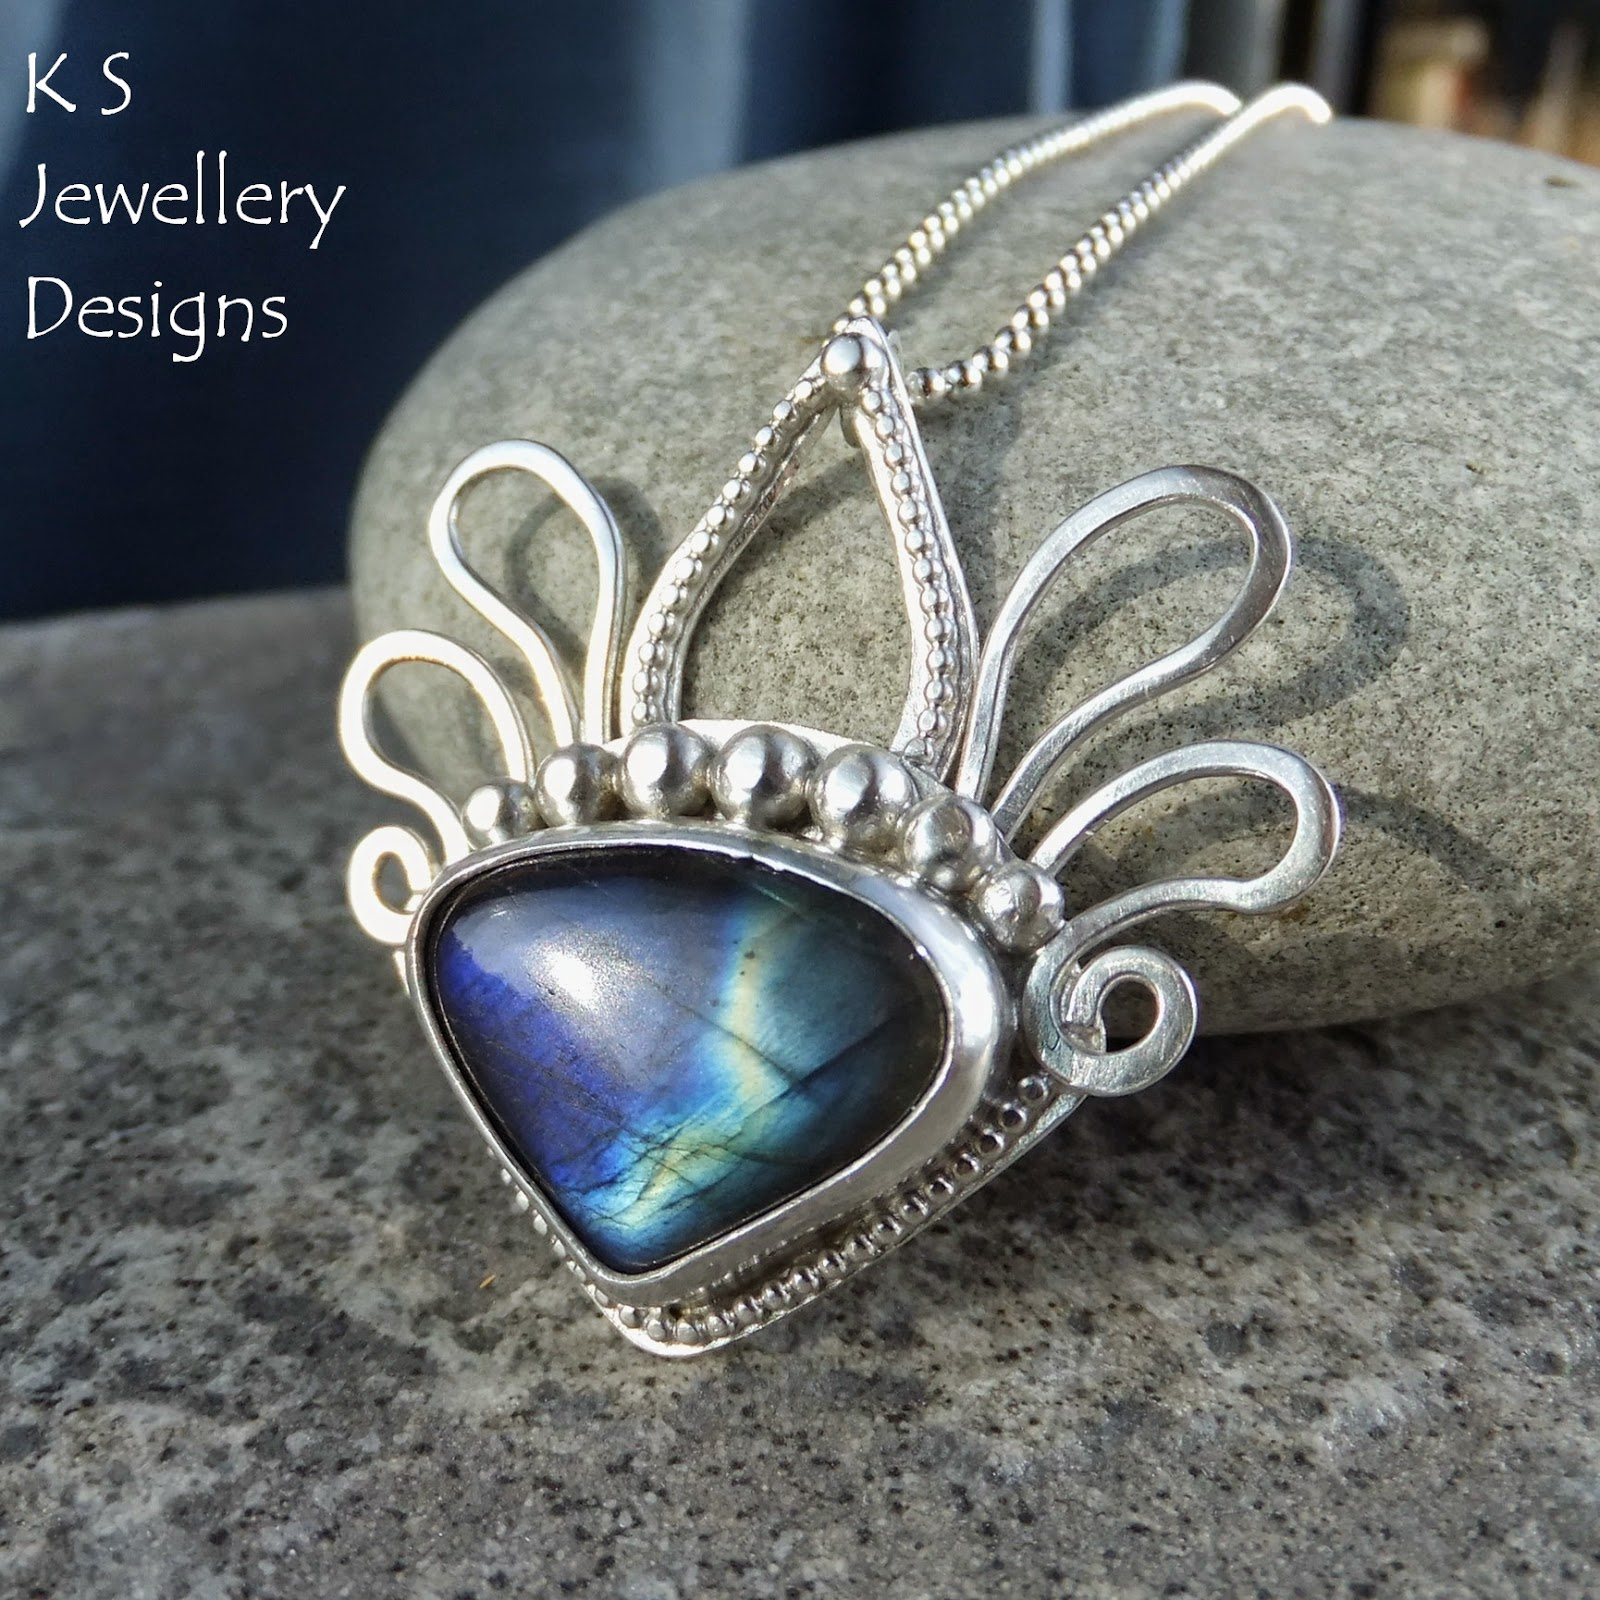 http://ksjewellerydesigns.co.uk/ourshop/prod_3689901-Labradorite-Sterling-Silver-Pendant-Decorative-Headdress.html